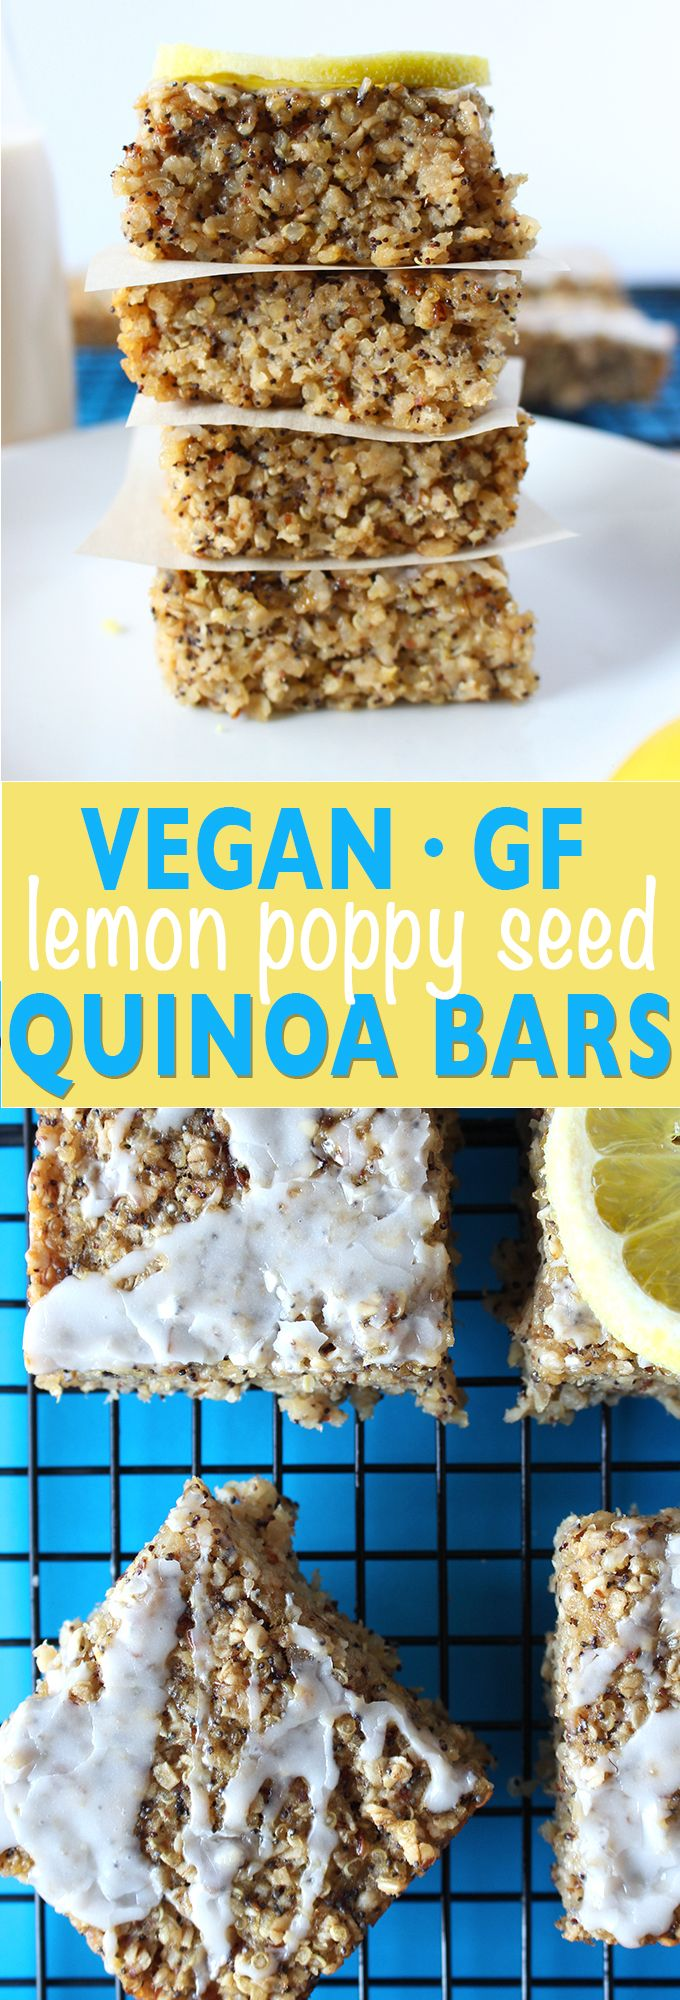 These hearty quinoa bars are a unique take on the traditional lemon poppy seed combination. They are bursting with the zing of lemon, studded with crunchy poppy seeds and filled with the protein packe